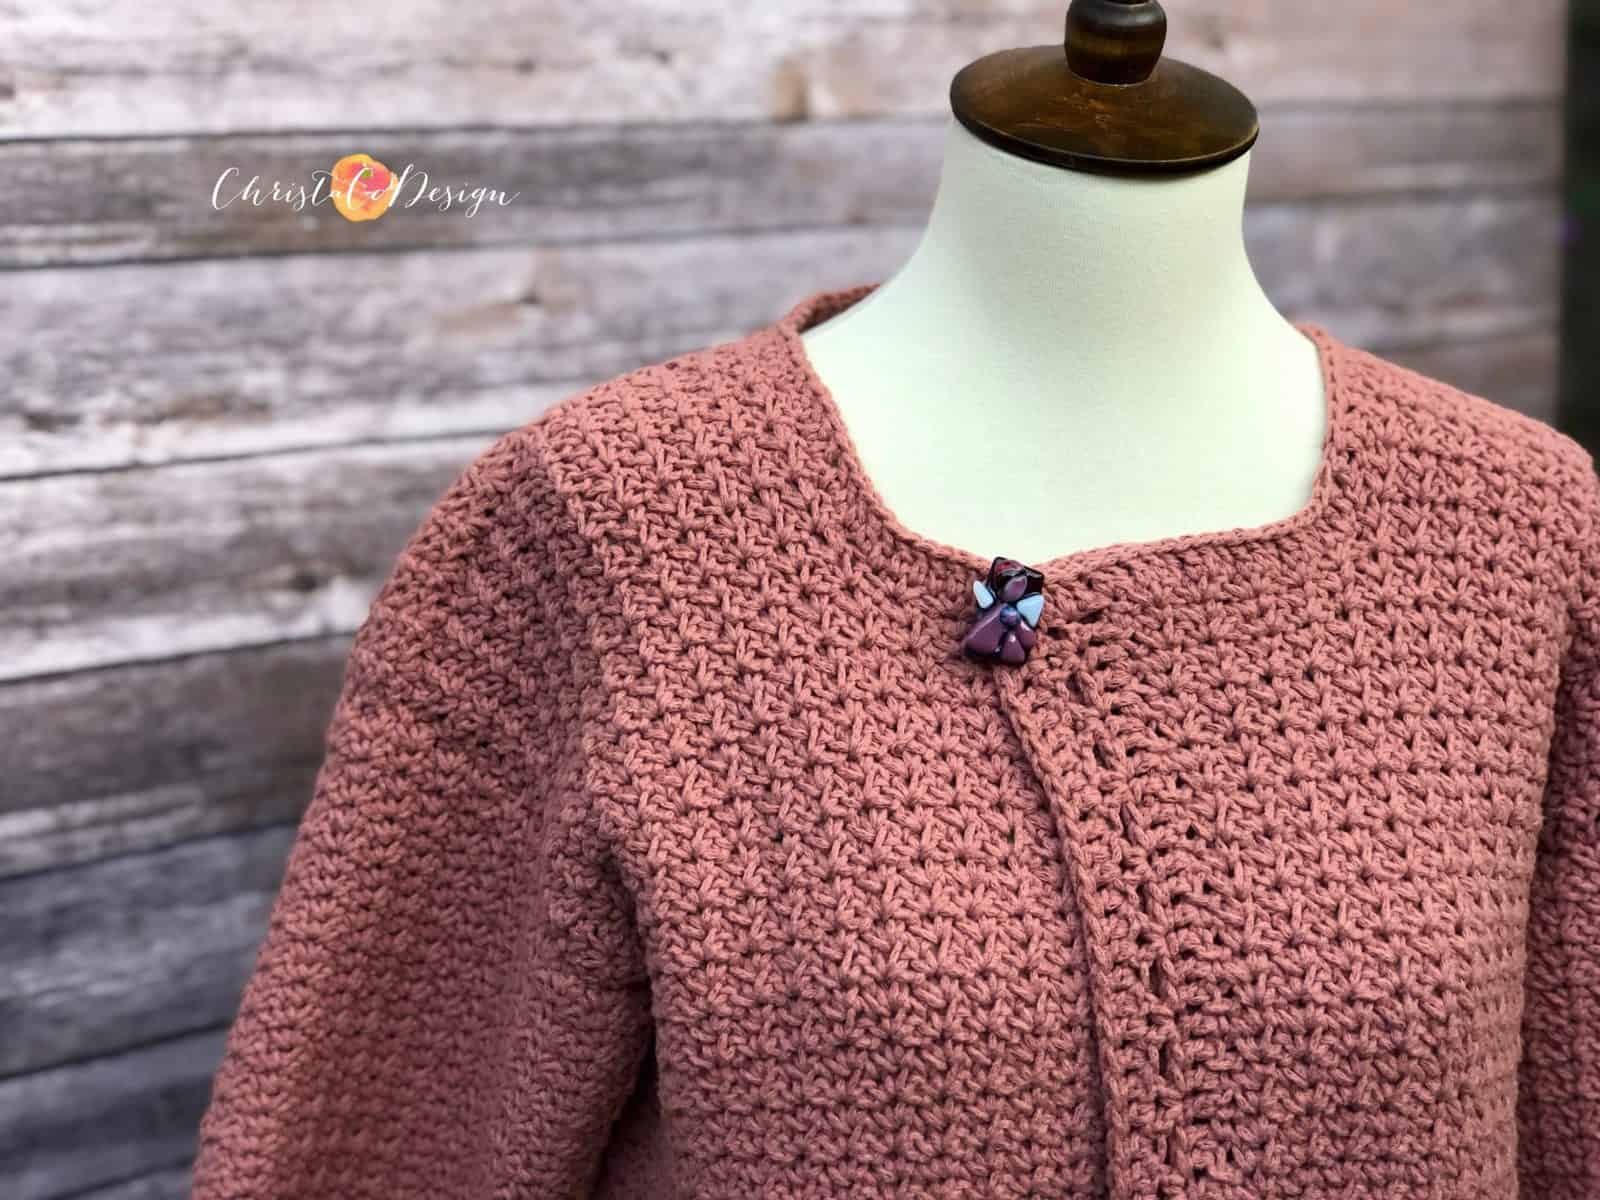 The Positano Crochet Cardigan a Free Pattern with Pockets!